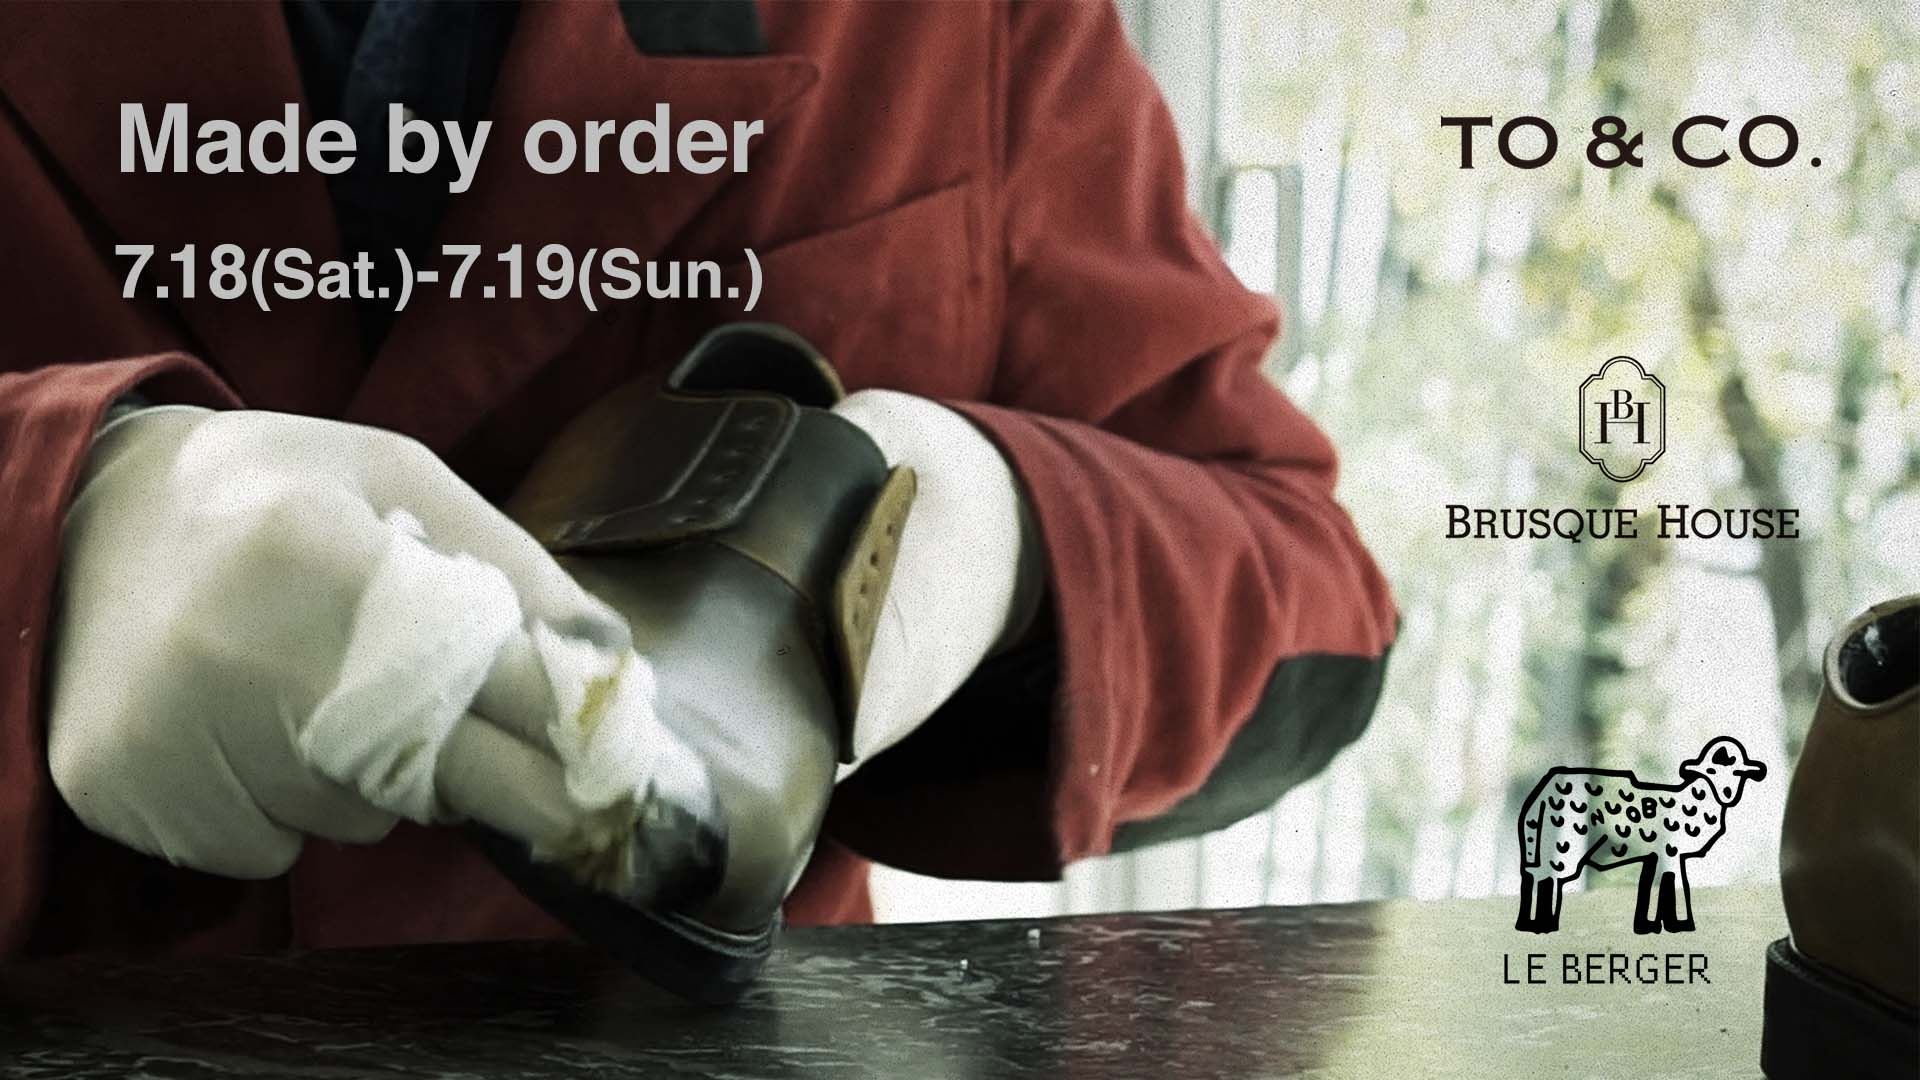 TO & CO × Brusque House × LE BERGER  Made by Order